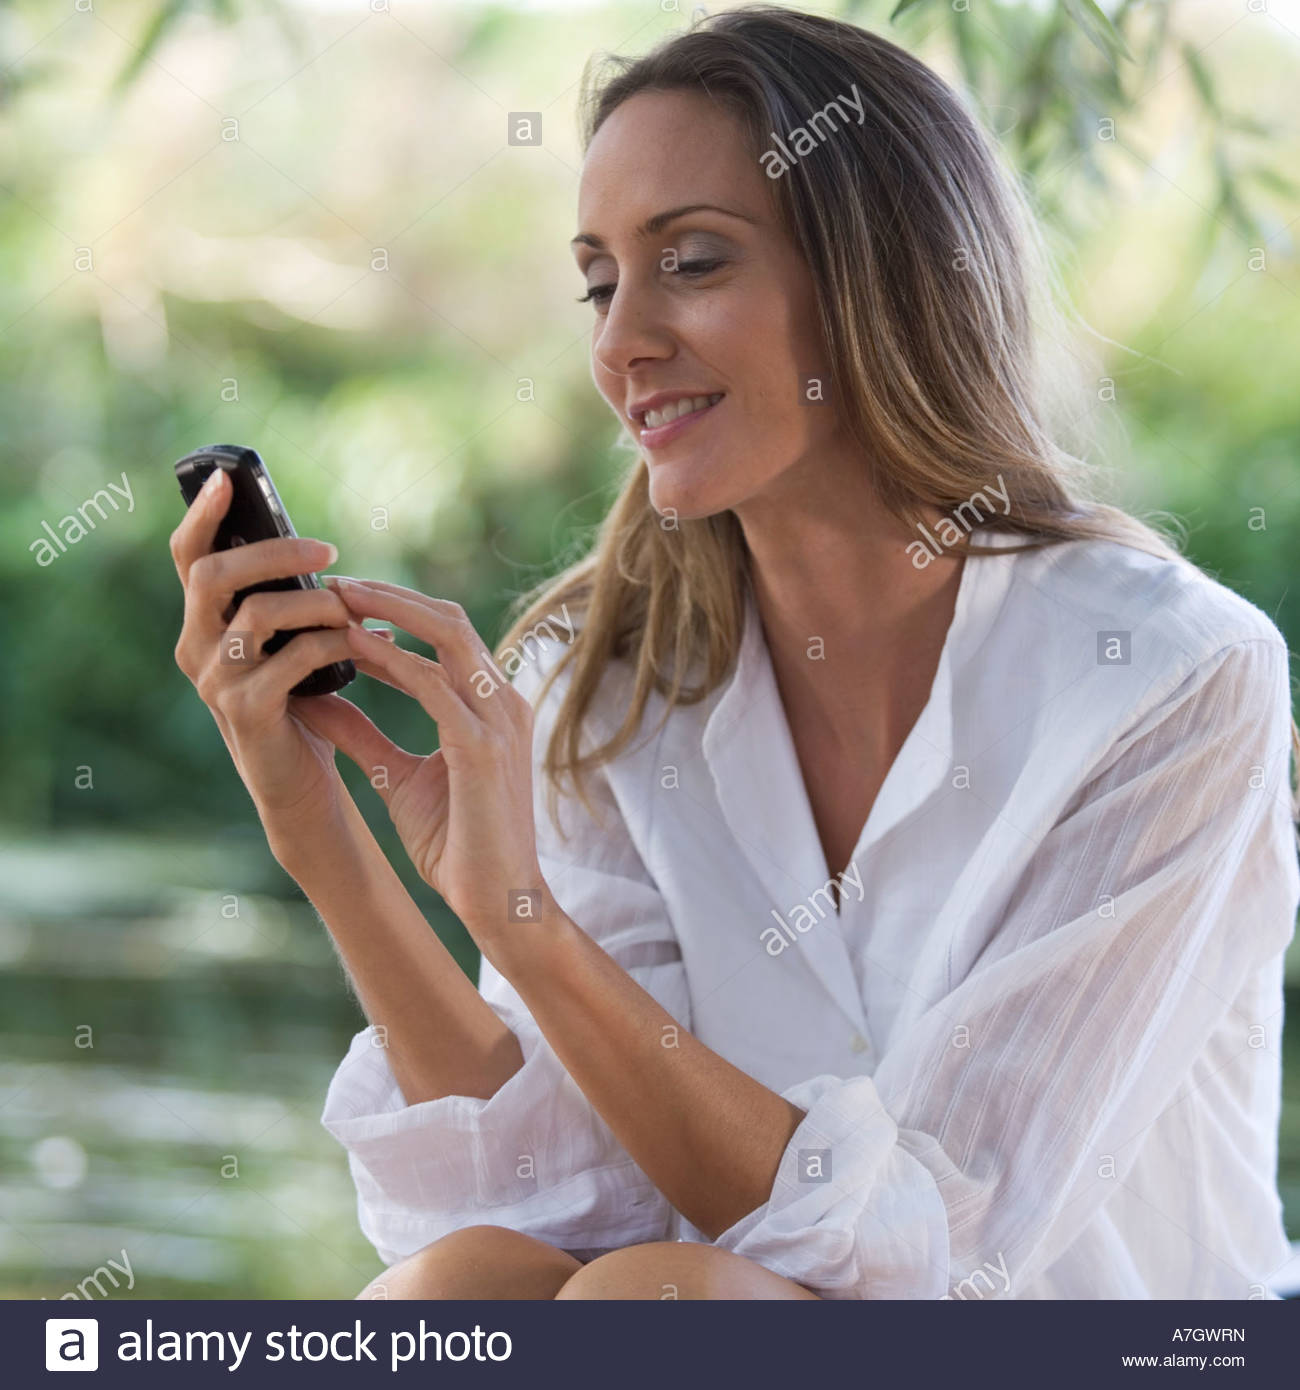 Young woman using a mobile phone - Stock Image